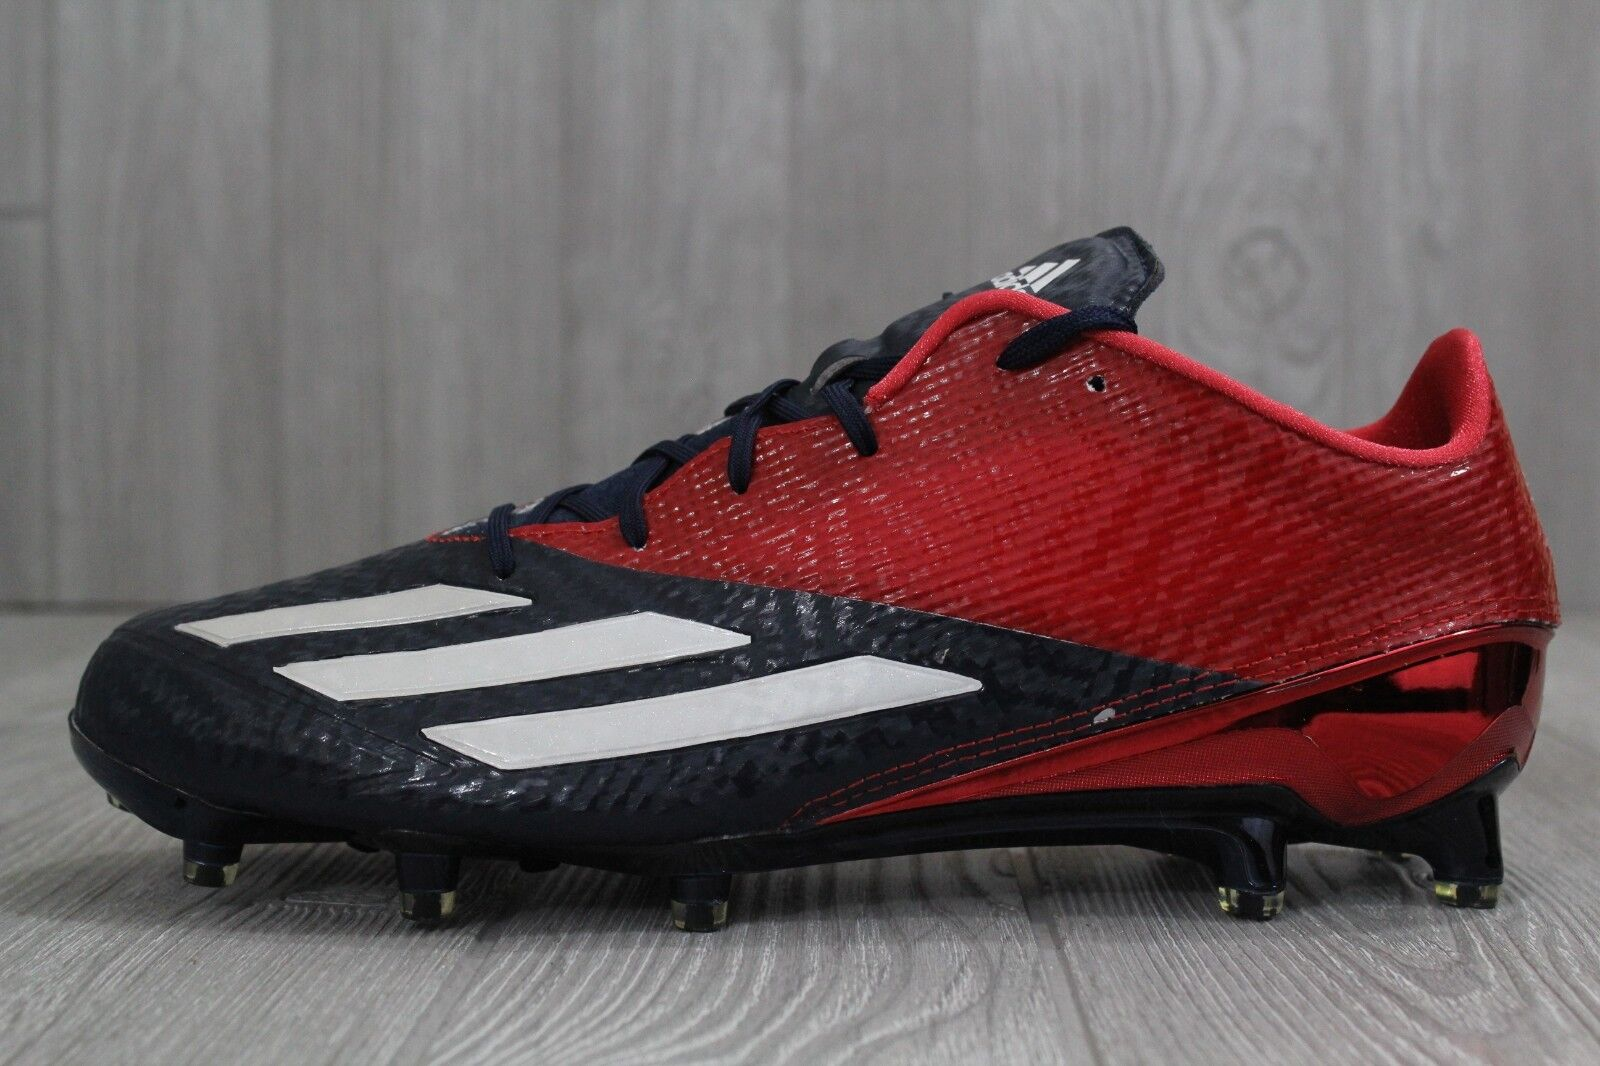 30 Adidas 5-Star 5.0 Low Football Cleats USA Red/White/Blue 11 11.5 AQ7166